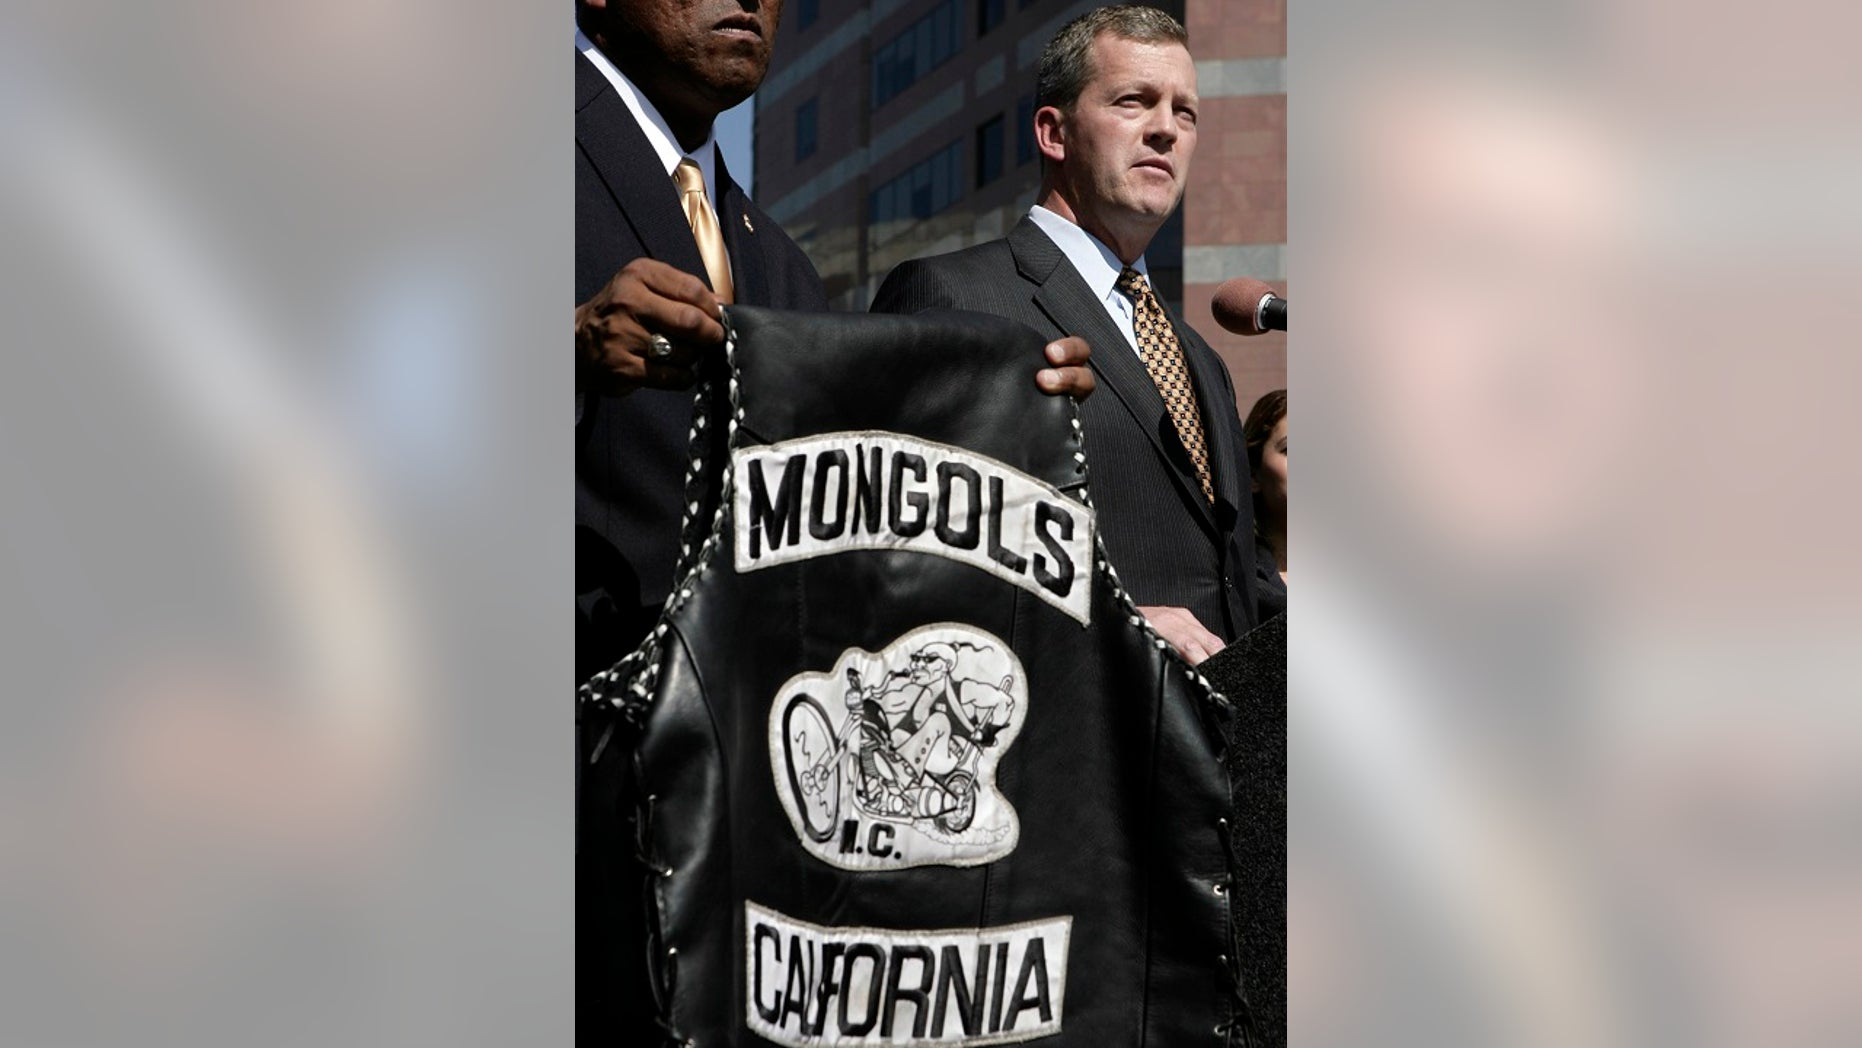 U.S. Attorney Thomas P. O'Brien, right, speaks during a news conference in Los Angeles about the arrest of several Mongol motorcycle gang members in six states as a vest with the Mongols logo displayed. (Associated Press)